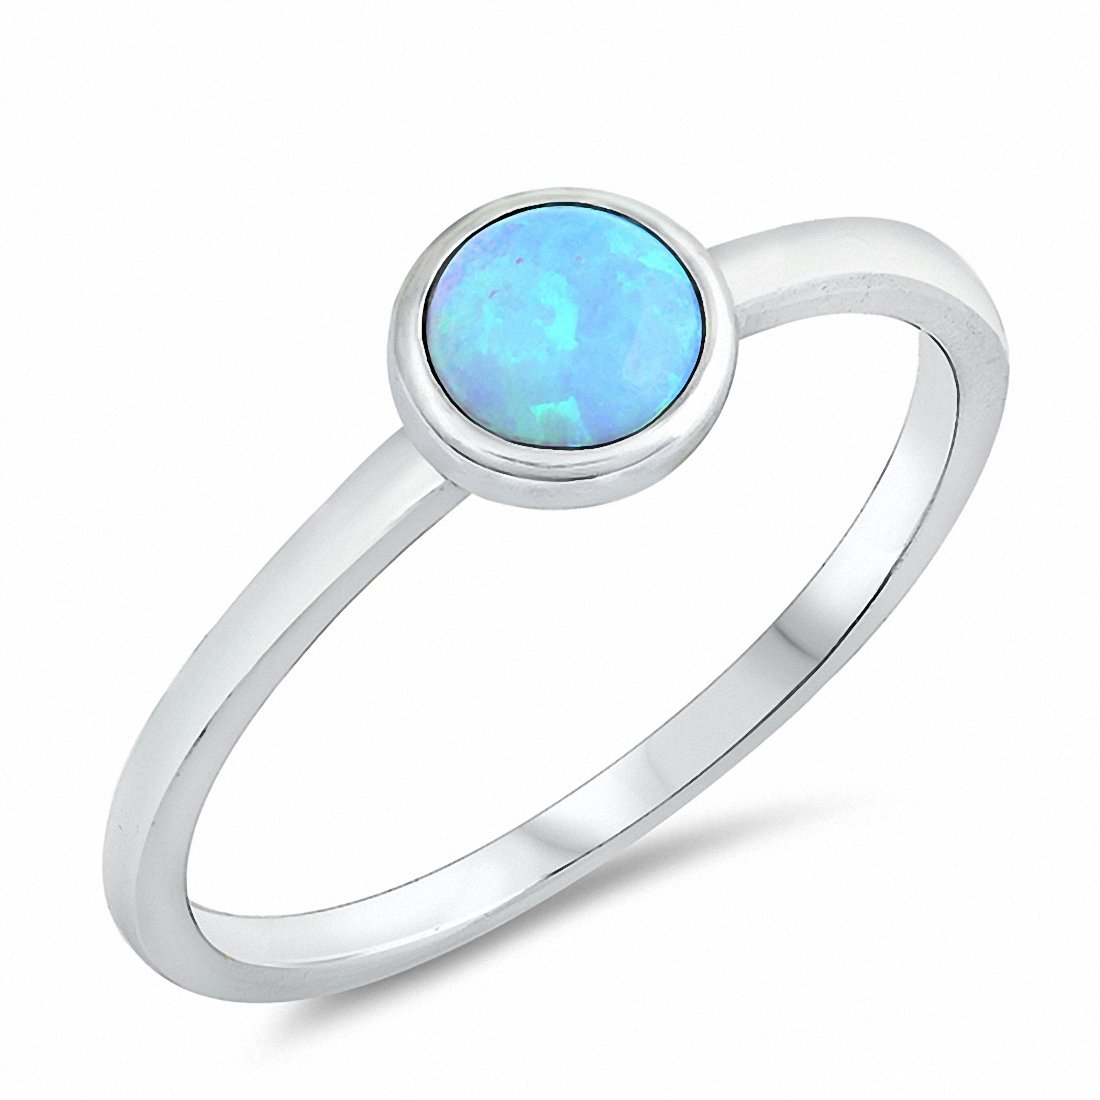 Petite Dainty Solitaire Ring Round Created Opal 925 Sterling Silver Choose Color